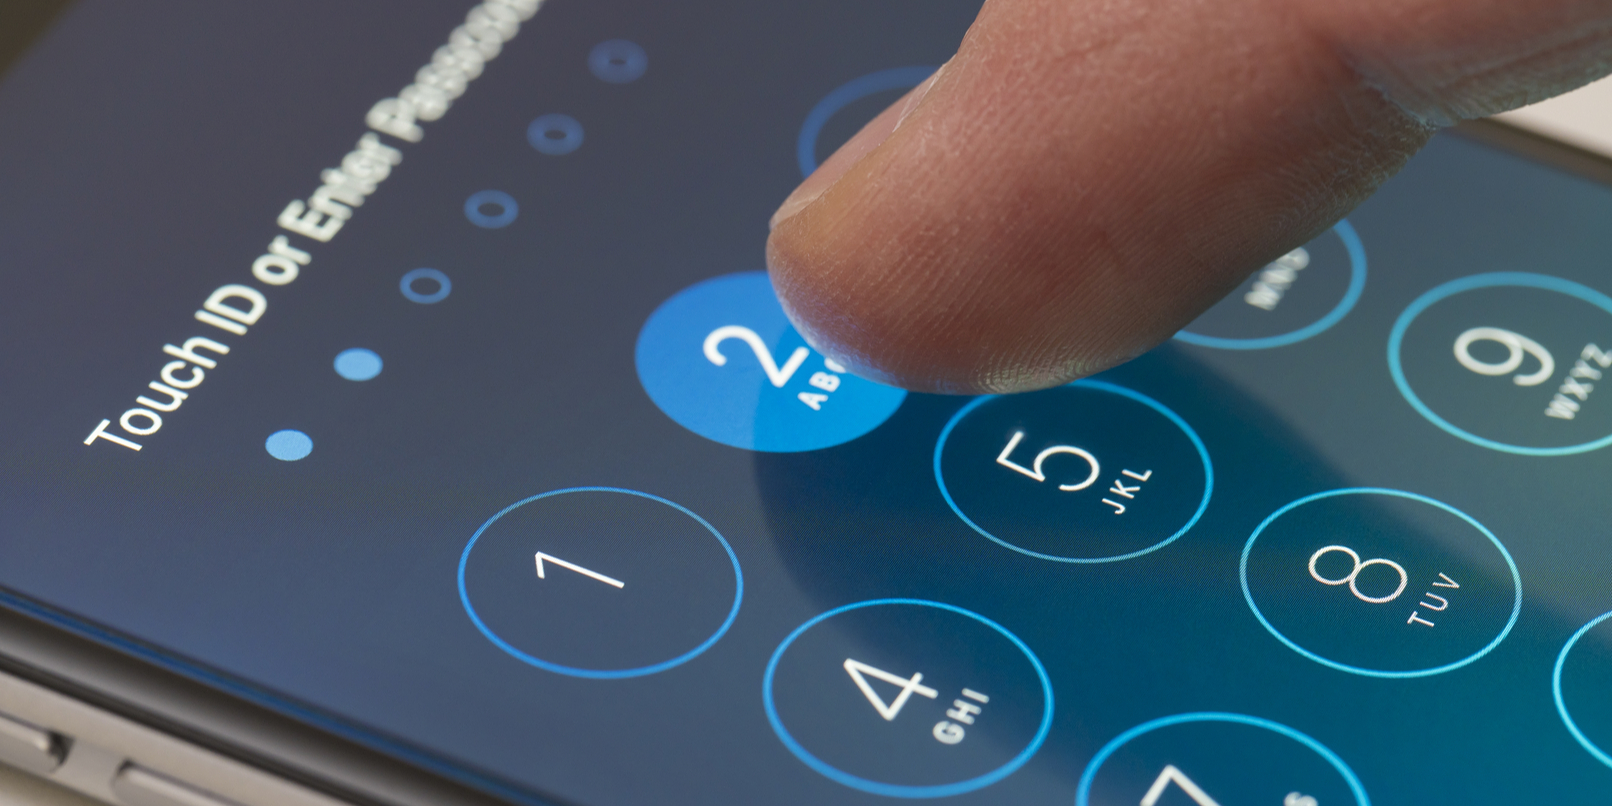 iPhone lock screen hack puts your private messages and nude pics at risk